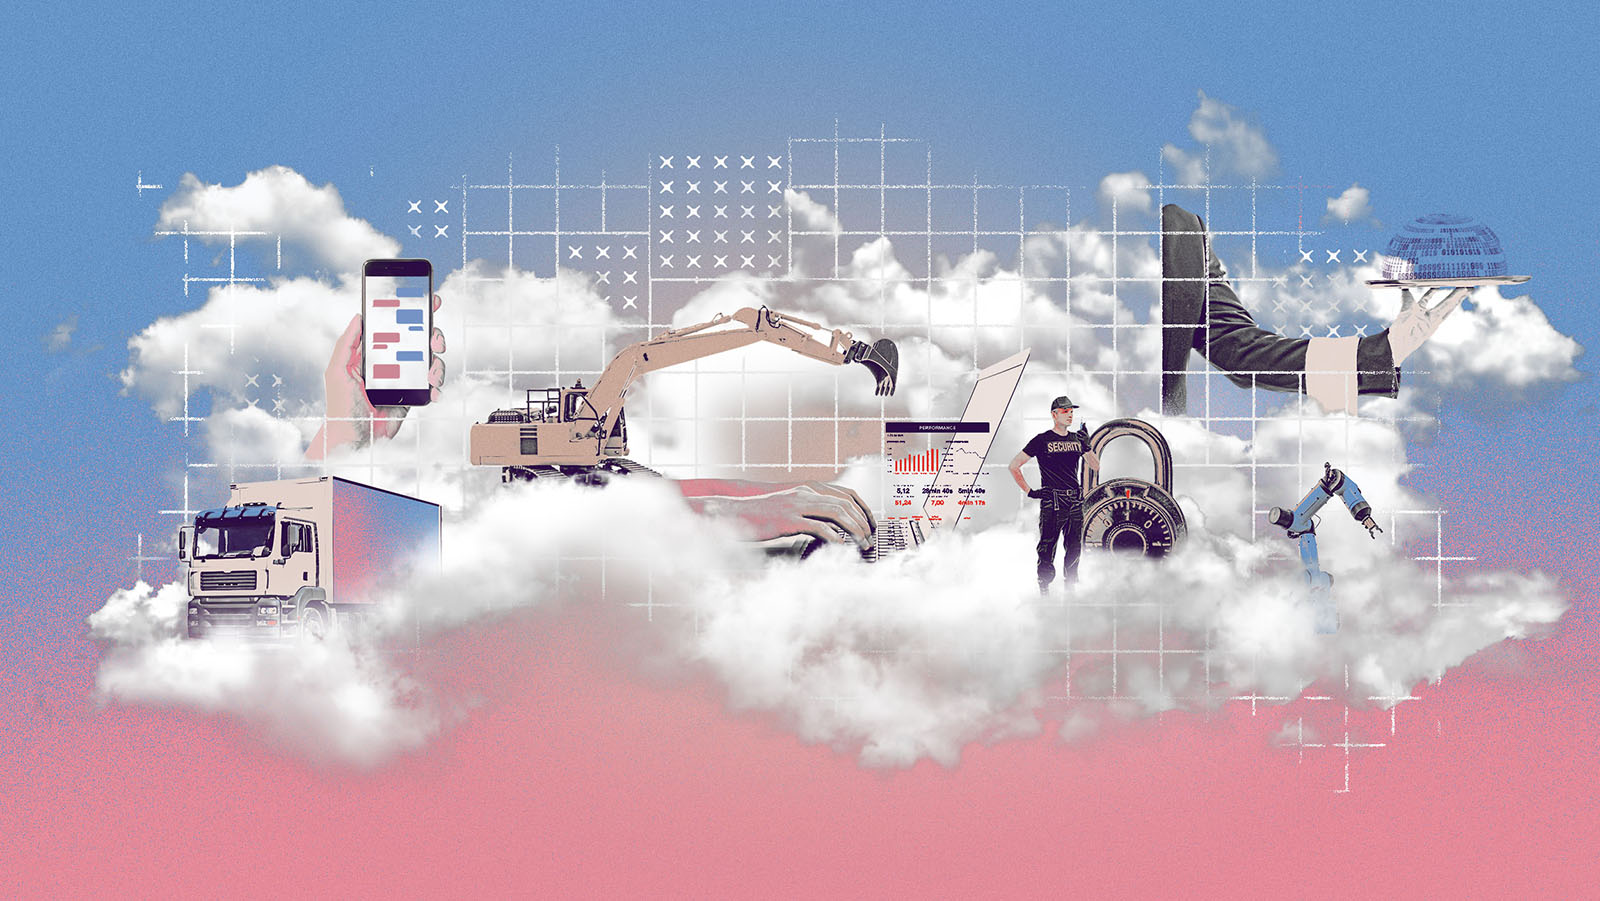 Max-o-matic: Forbes Magazine: Cloud Companies